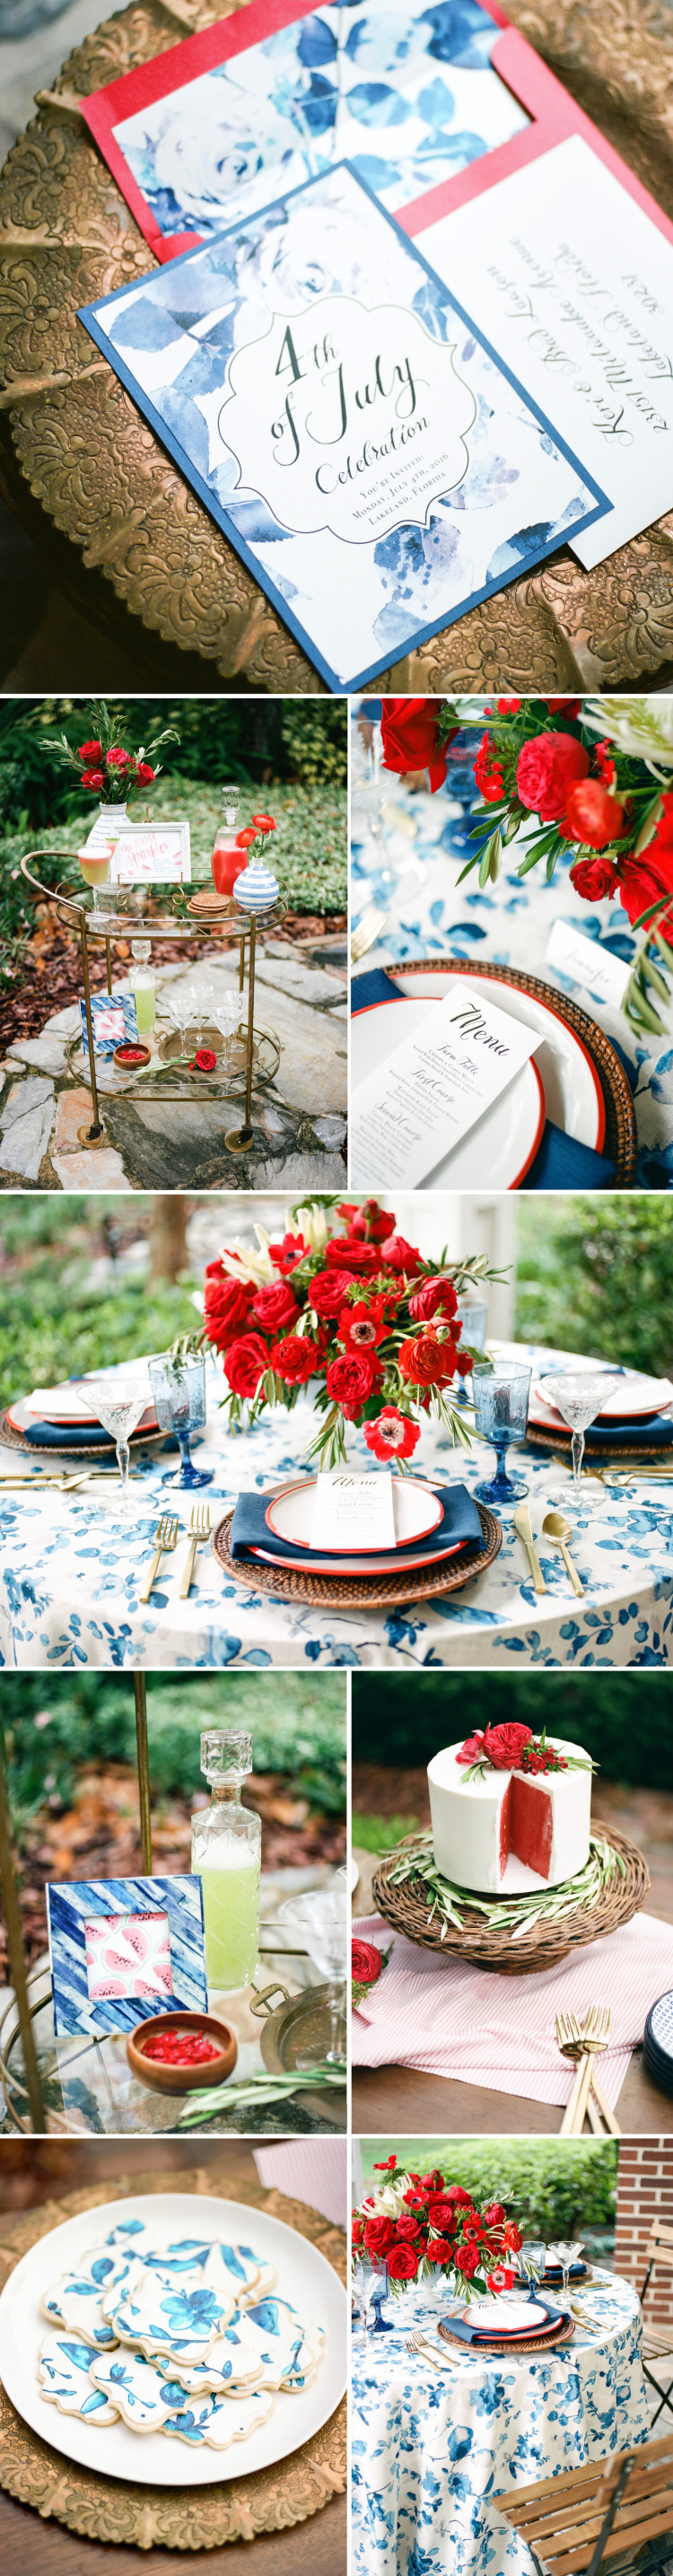 Fourth of July Party Ideas | Beacon Lane